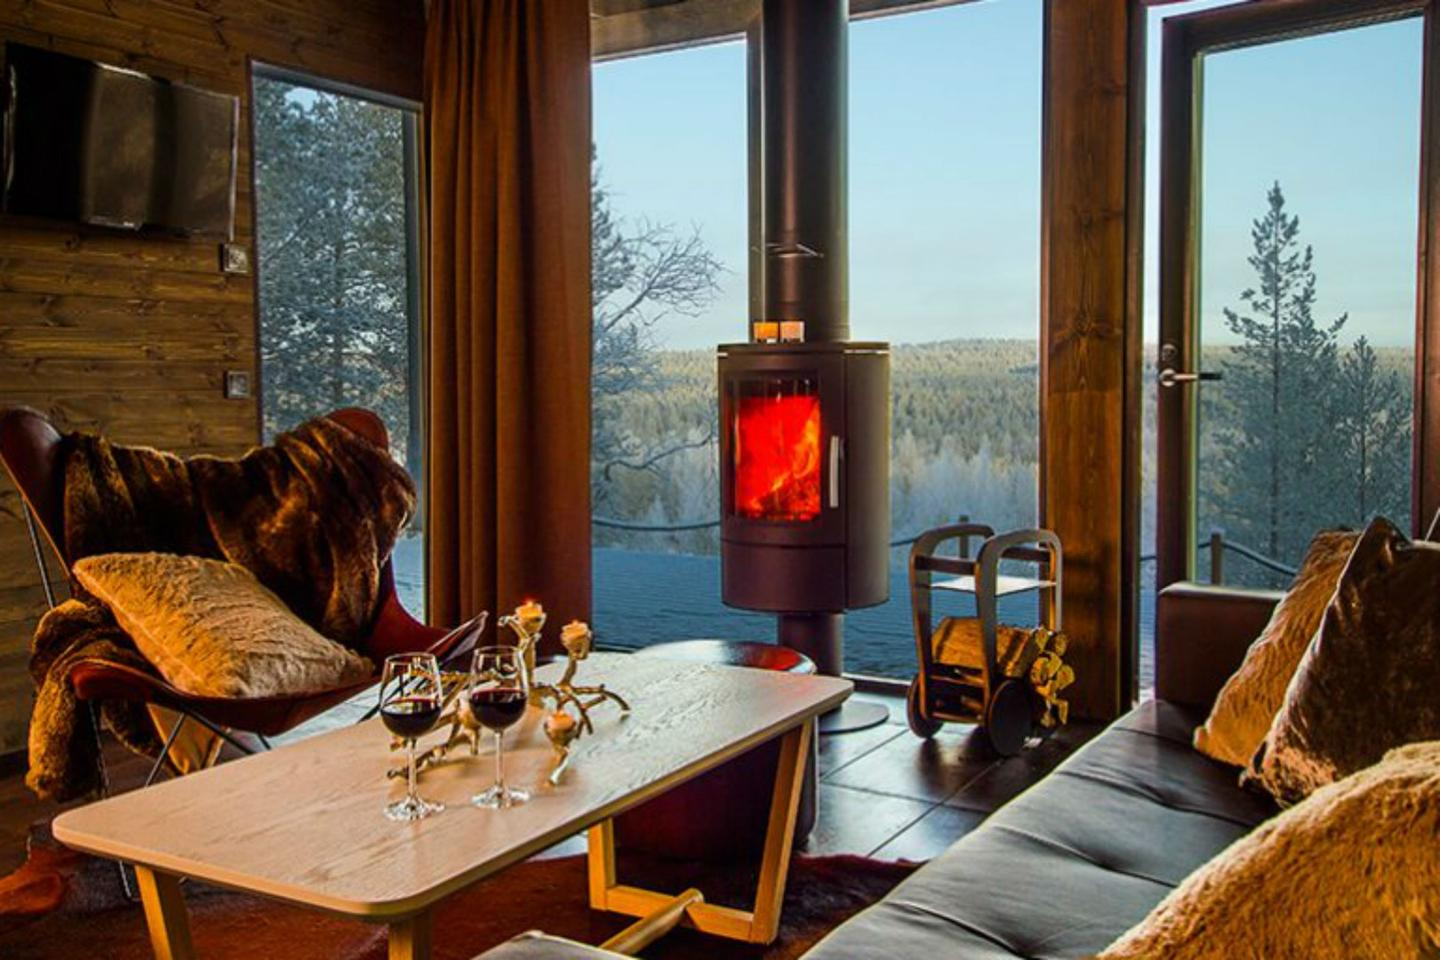 Arctic GlassHouses include a sumptuous lounge with a fireplace, two bedrooms, a kitchenette, a spacious deck area, a private sauna, and, of course, breathtaking views of the Lapland scenery